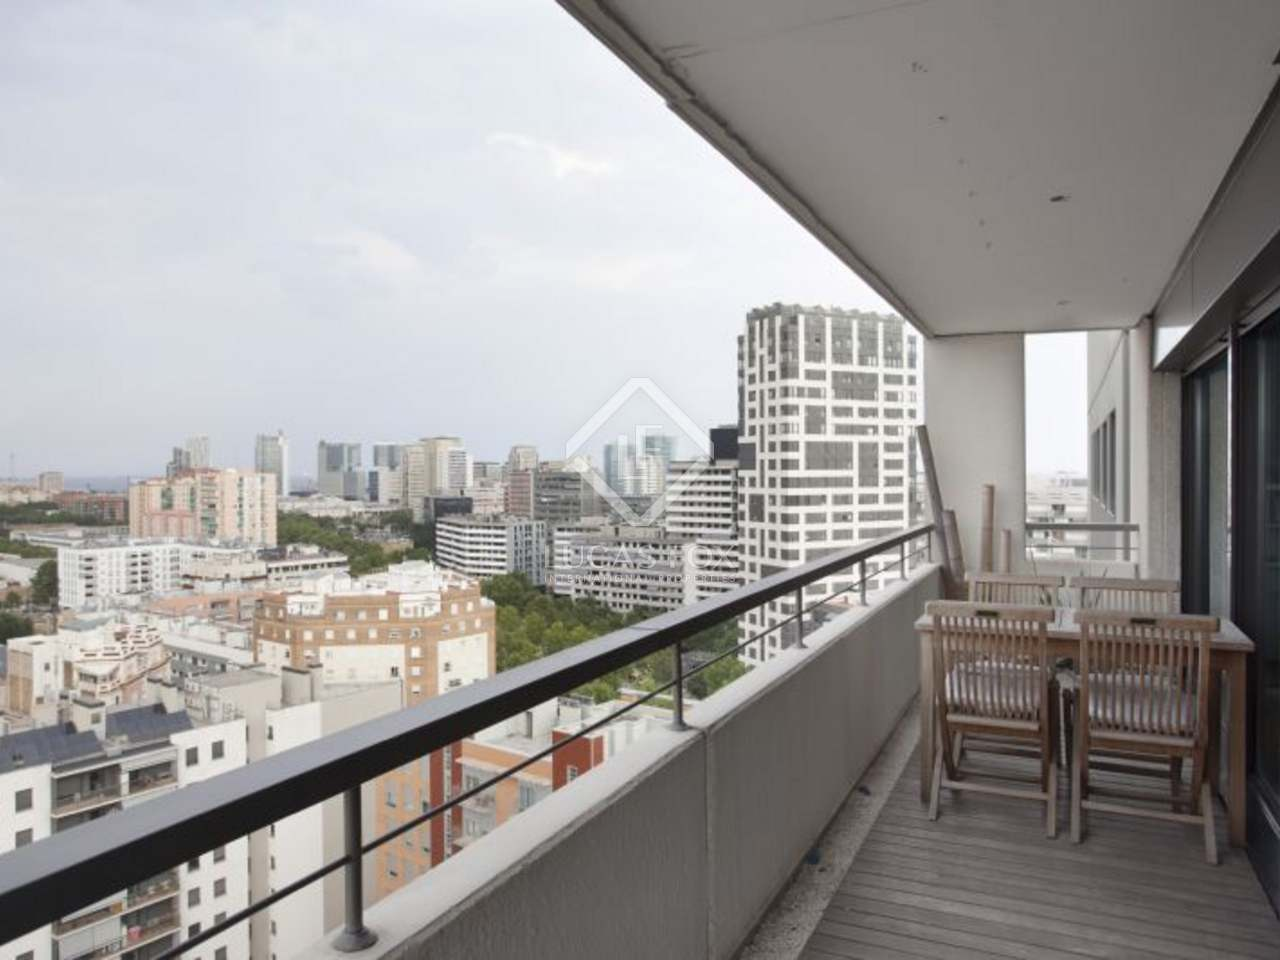 Appartement moderne en vente poblenou barcelone for Appartement barcelone piscine